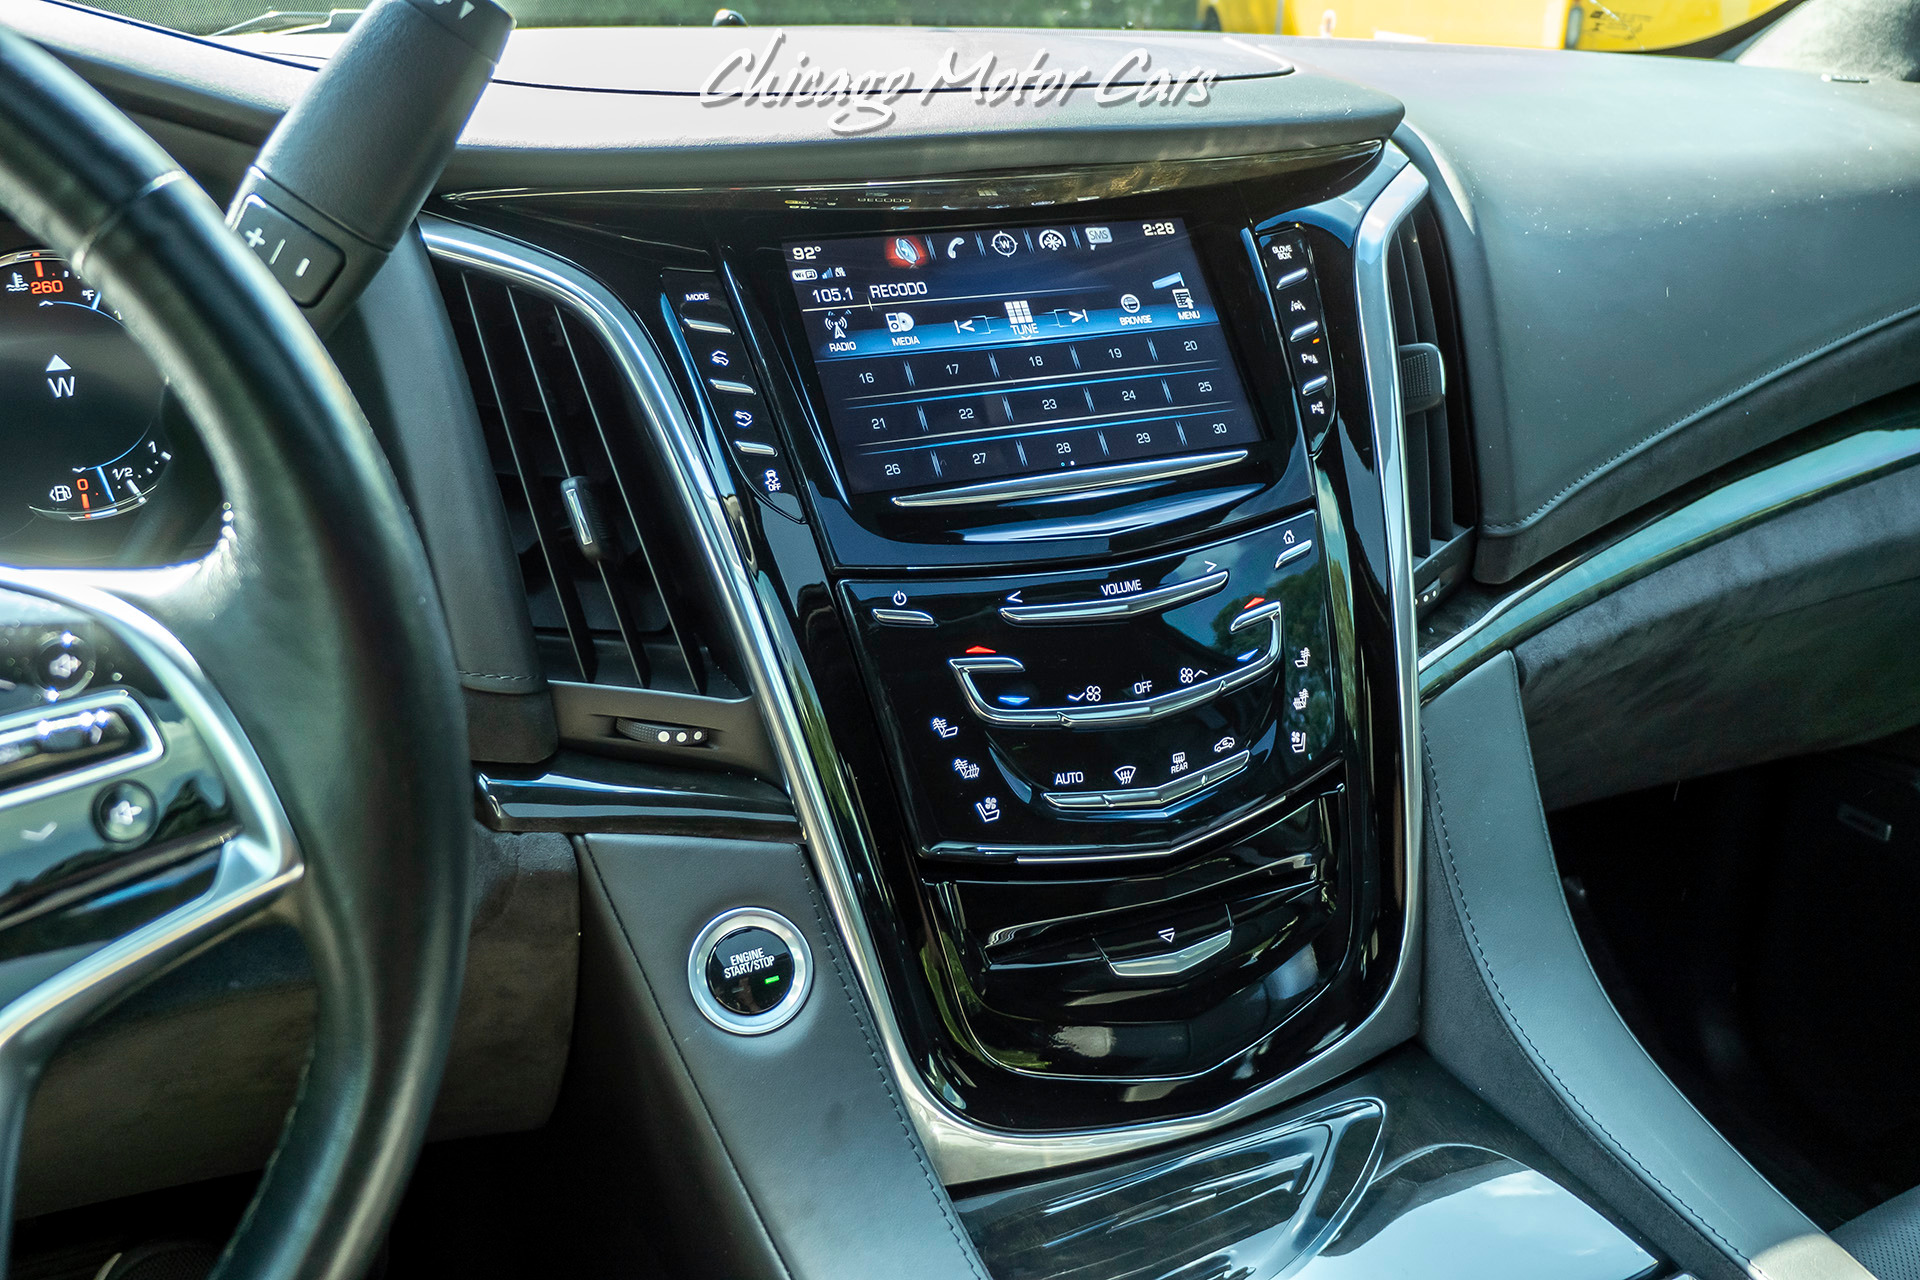 Used-2017-Cadillac-Escalade-Platinum-Vogue-Wheels